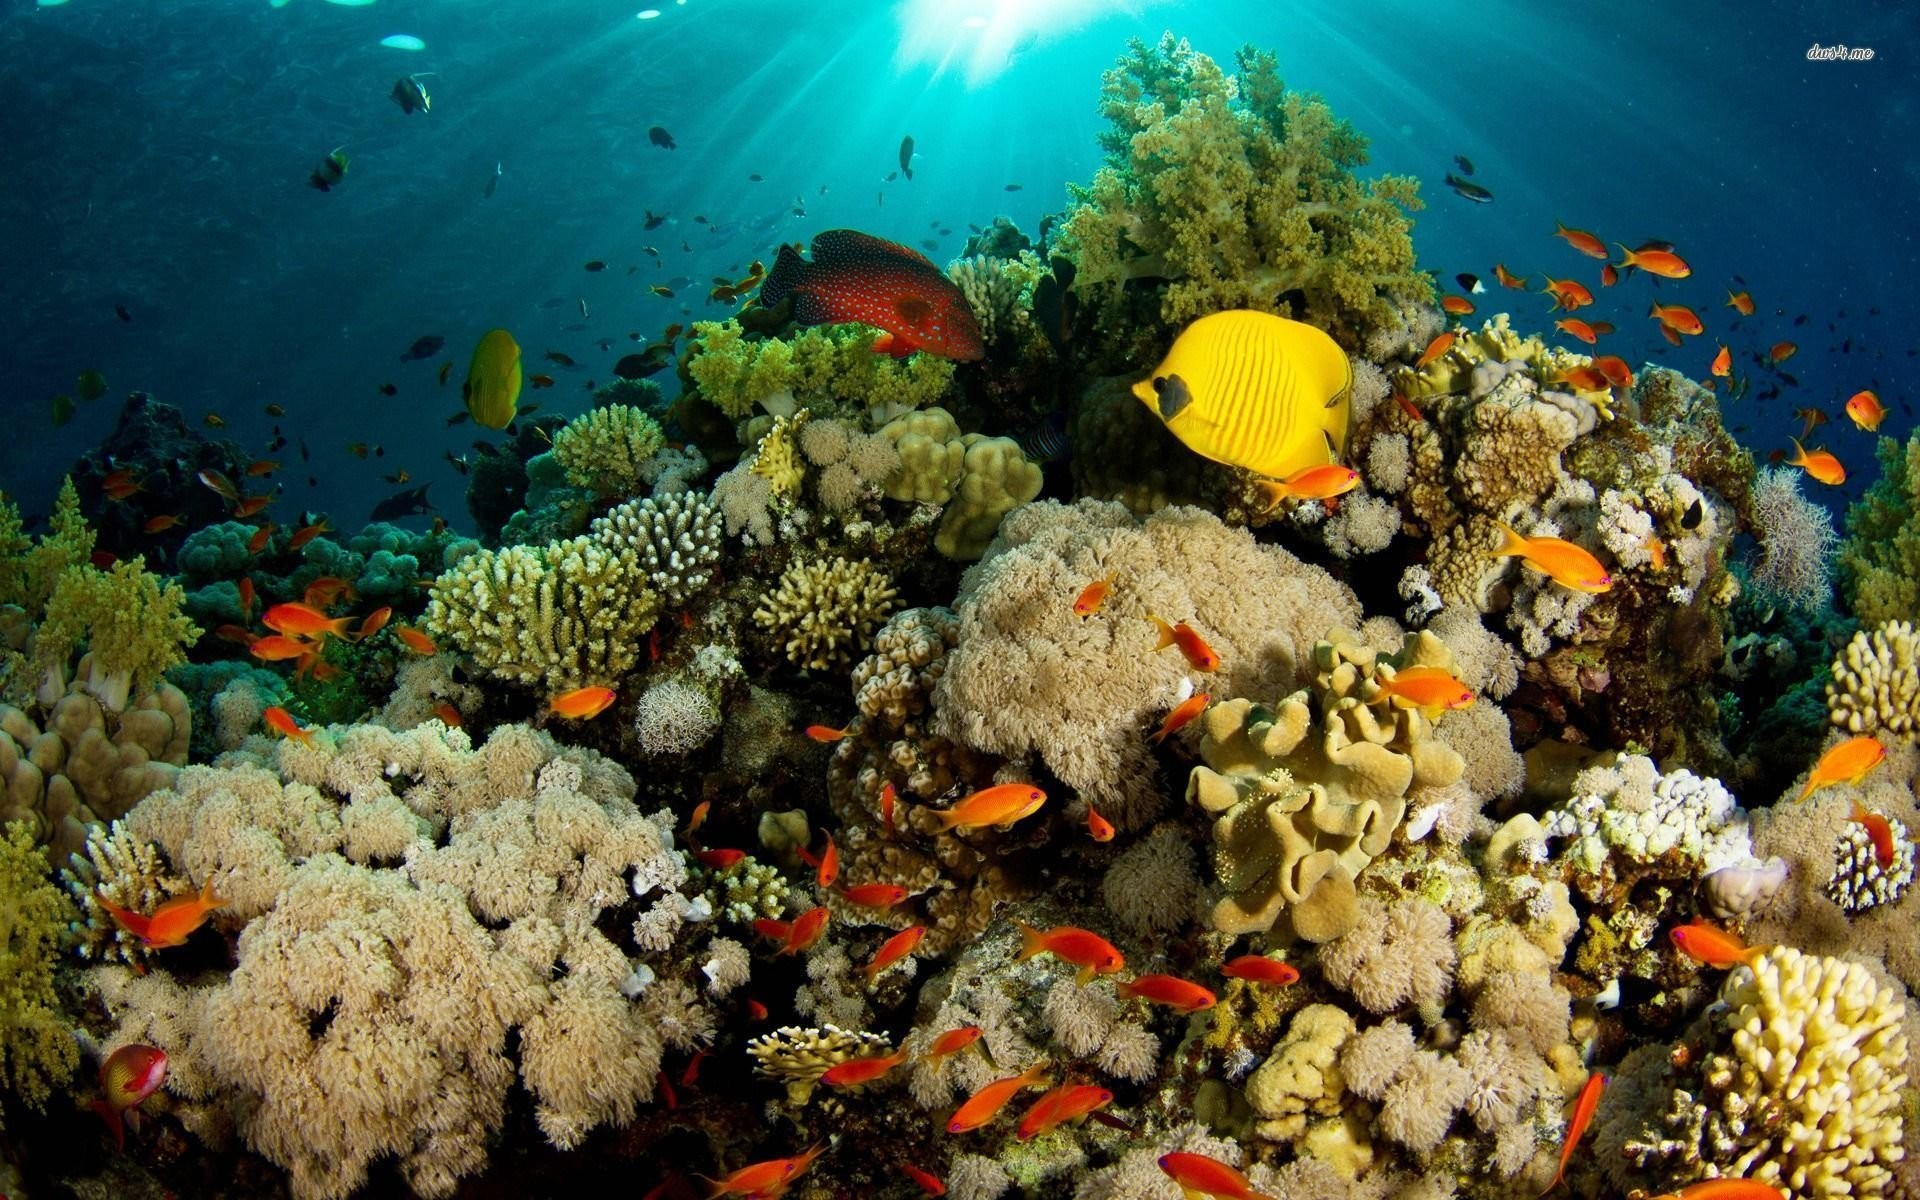 Tropical Fish Around The Coral Reef